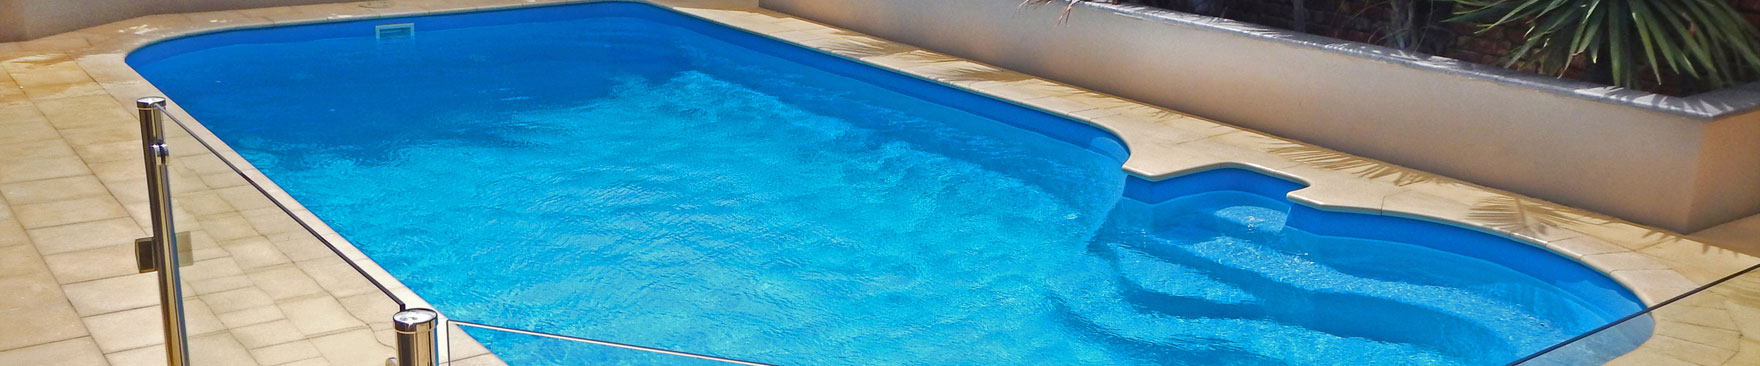 Pre Owned Fibreglass Pools - Swimming Pool, Vinyl Lined